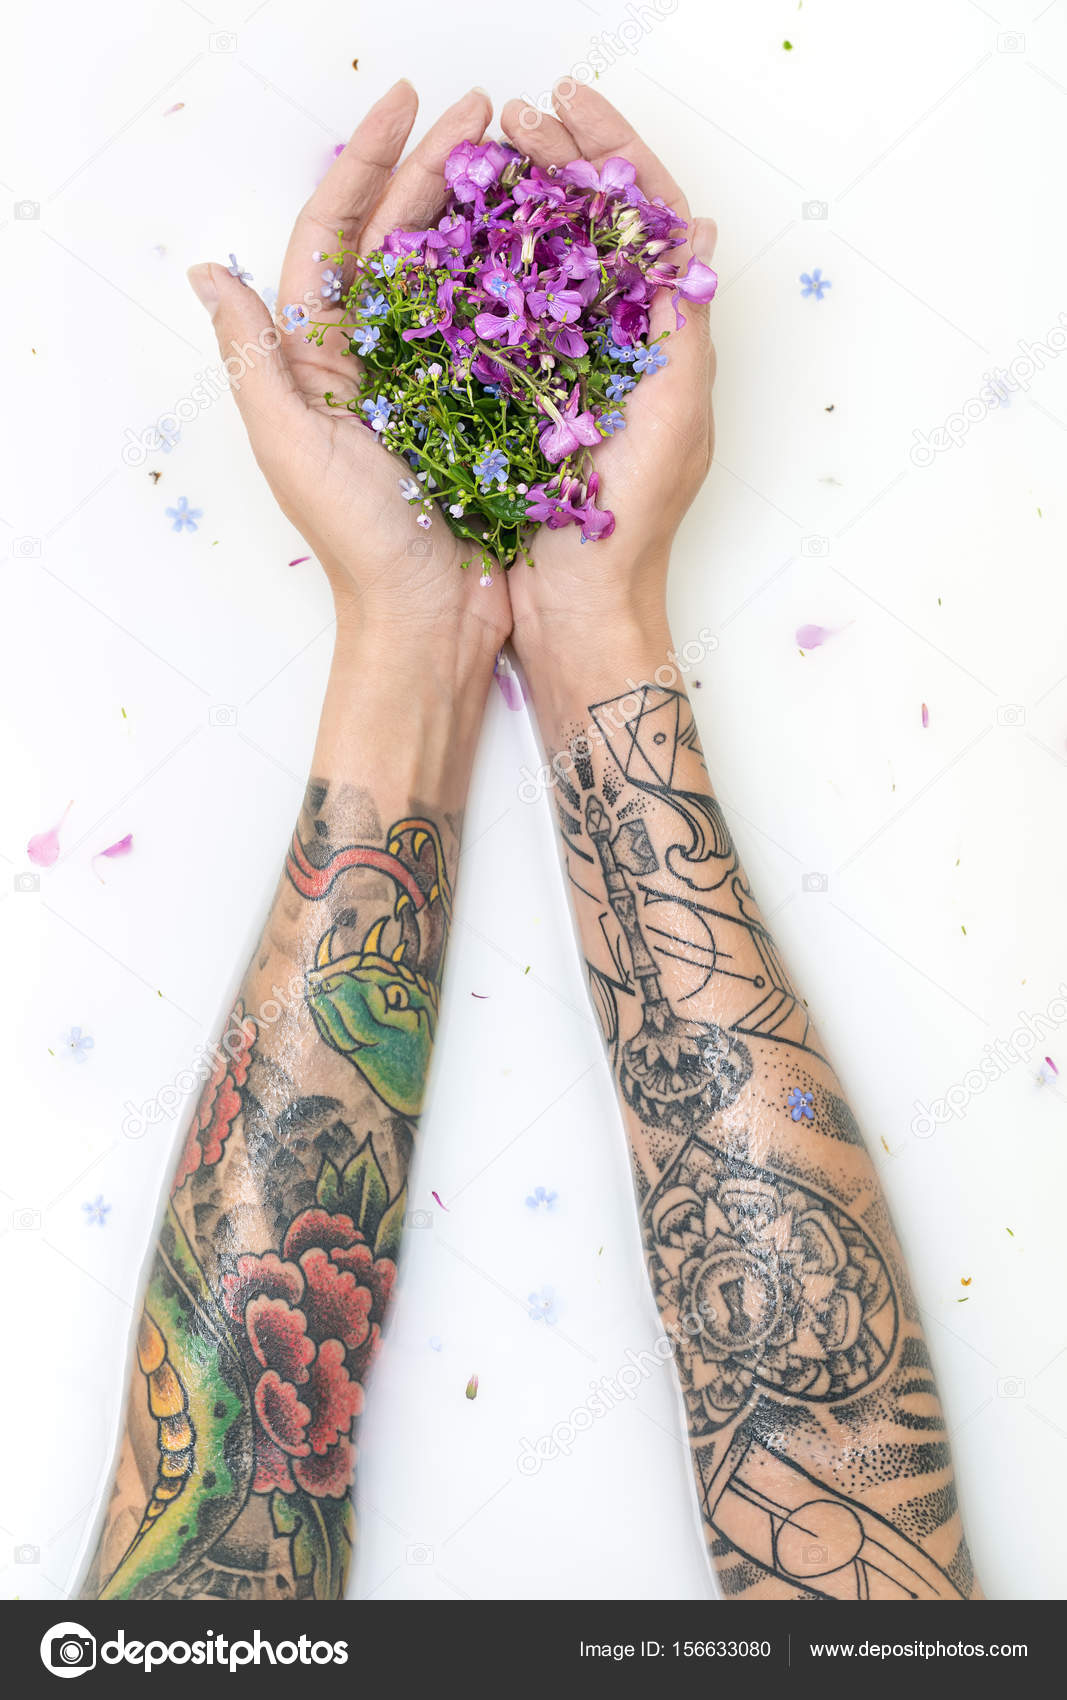 depositphotos_156633080-stock-photo-girls-hands-with-tattoos-and.jpg